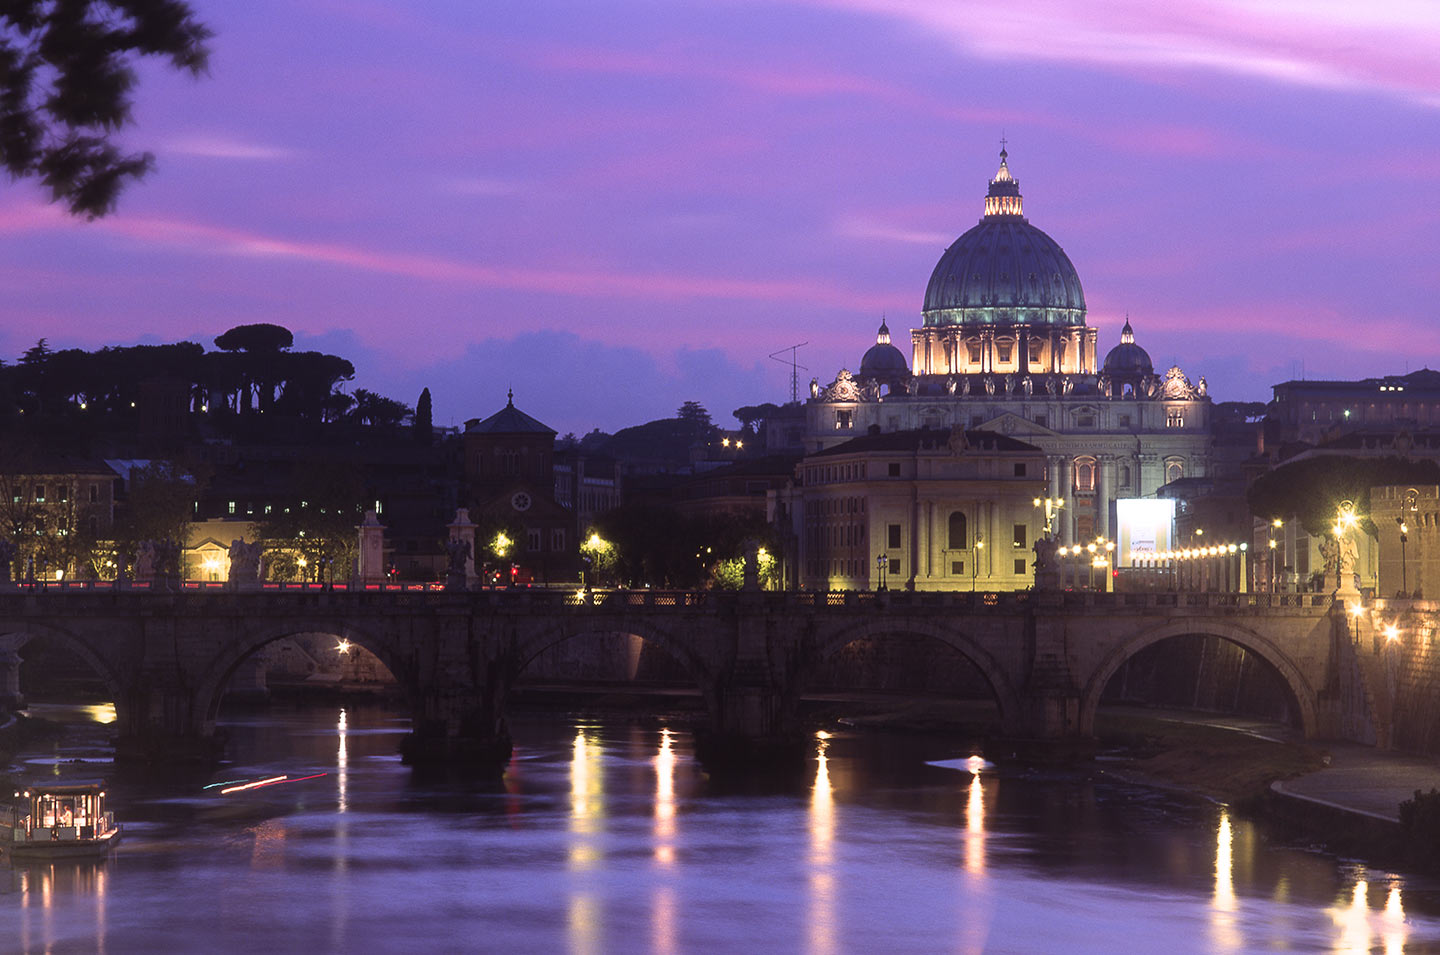 Image of St Peter's Basilica and the River Tiber at night, Rome